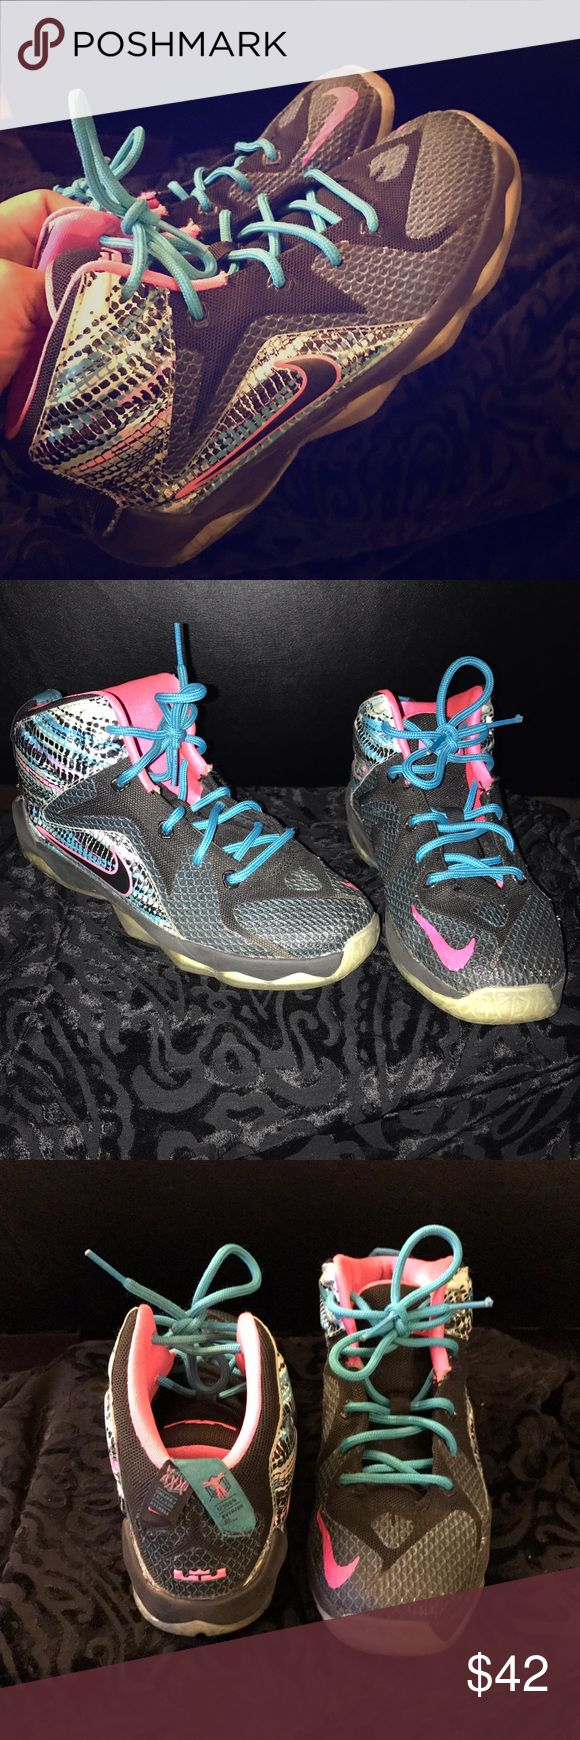 ✨LEBRON JAMES✨ Basketball sneaker, bright multi colored, GREAT CONDITION. These were LOVED by my daughter! 😍 Nike Shoes Sneakers